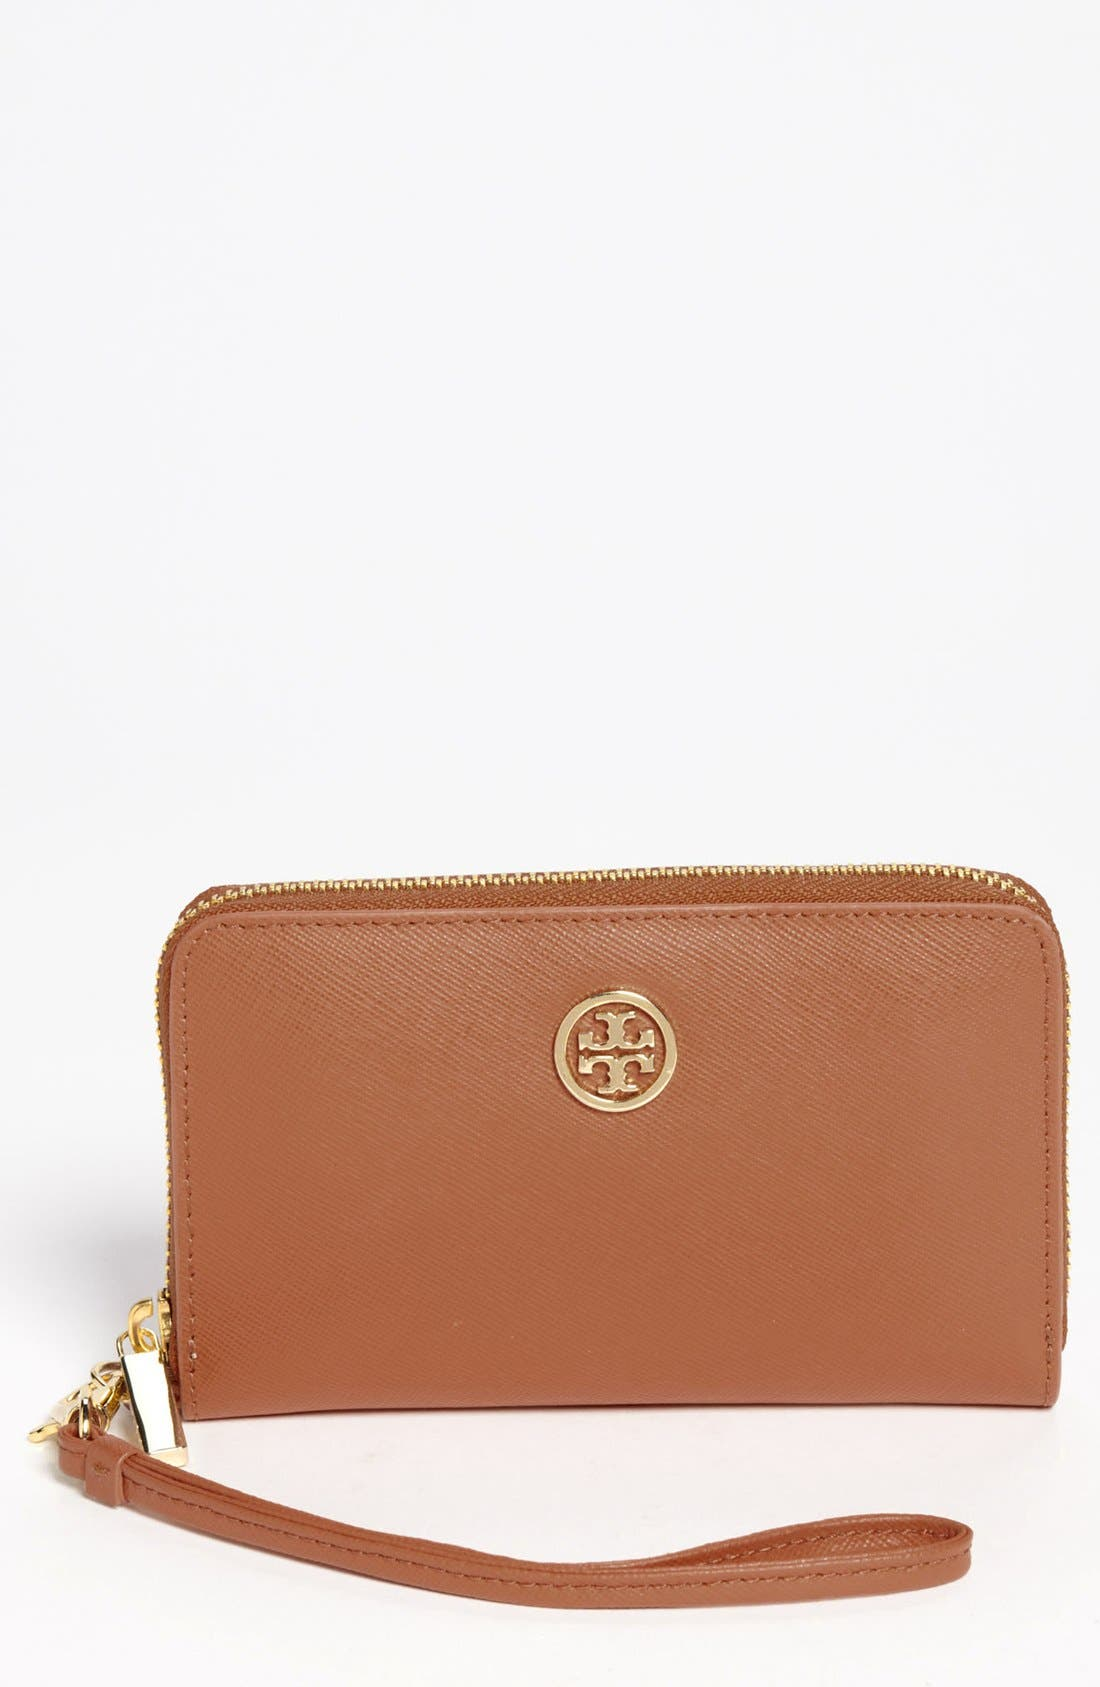 Alternate Image 1 Selected - Tory Burch 'Robinson' Smartphone Wallet